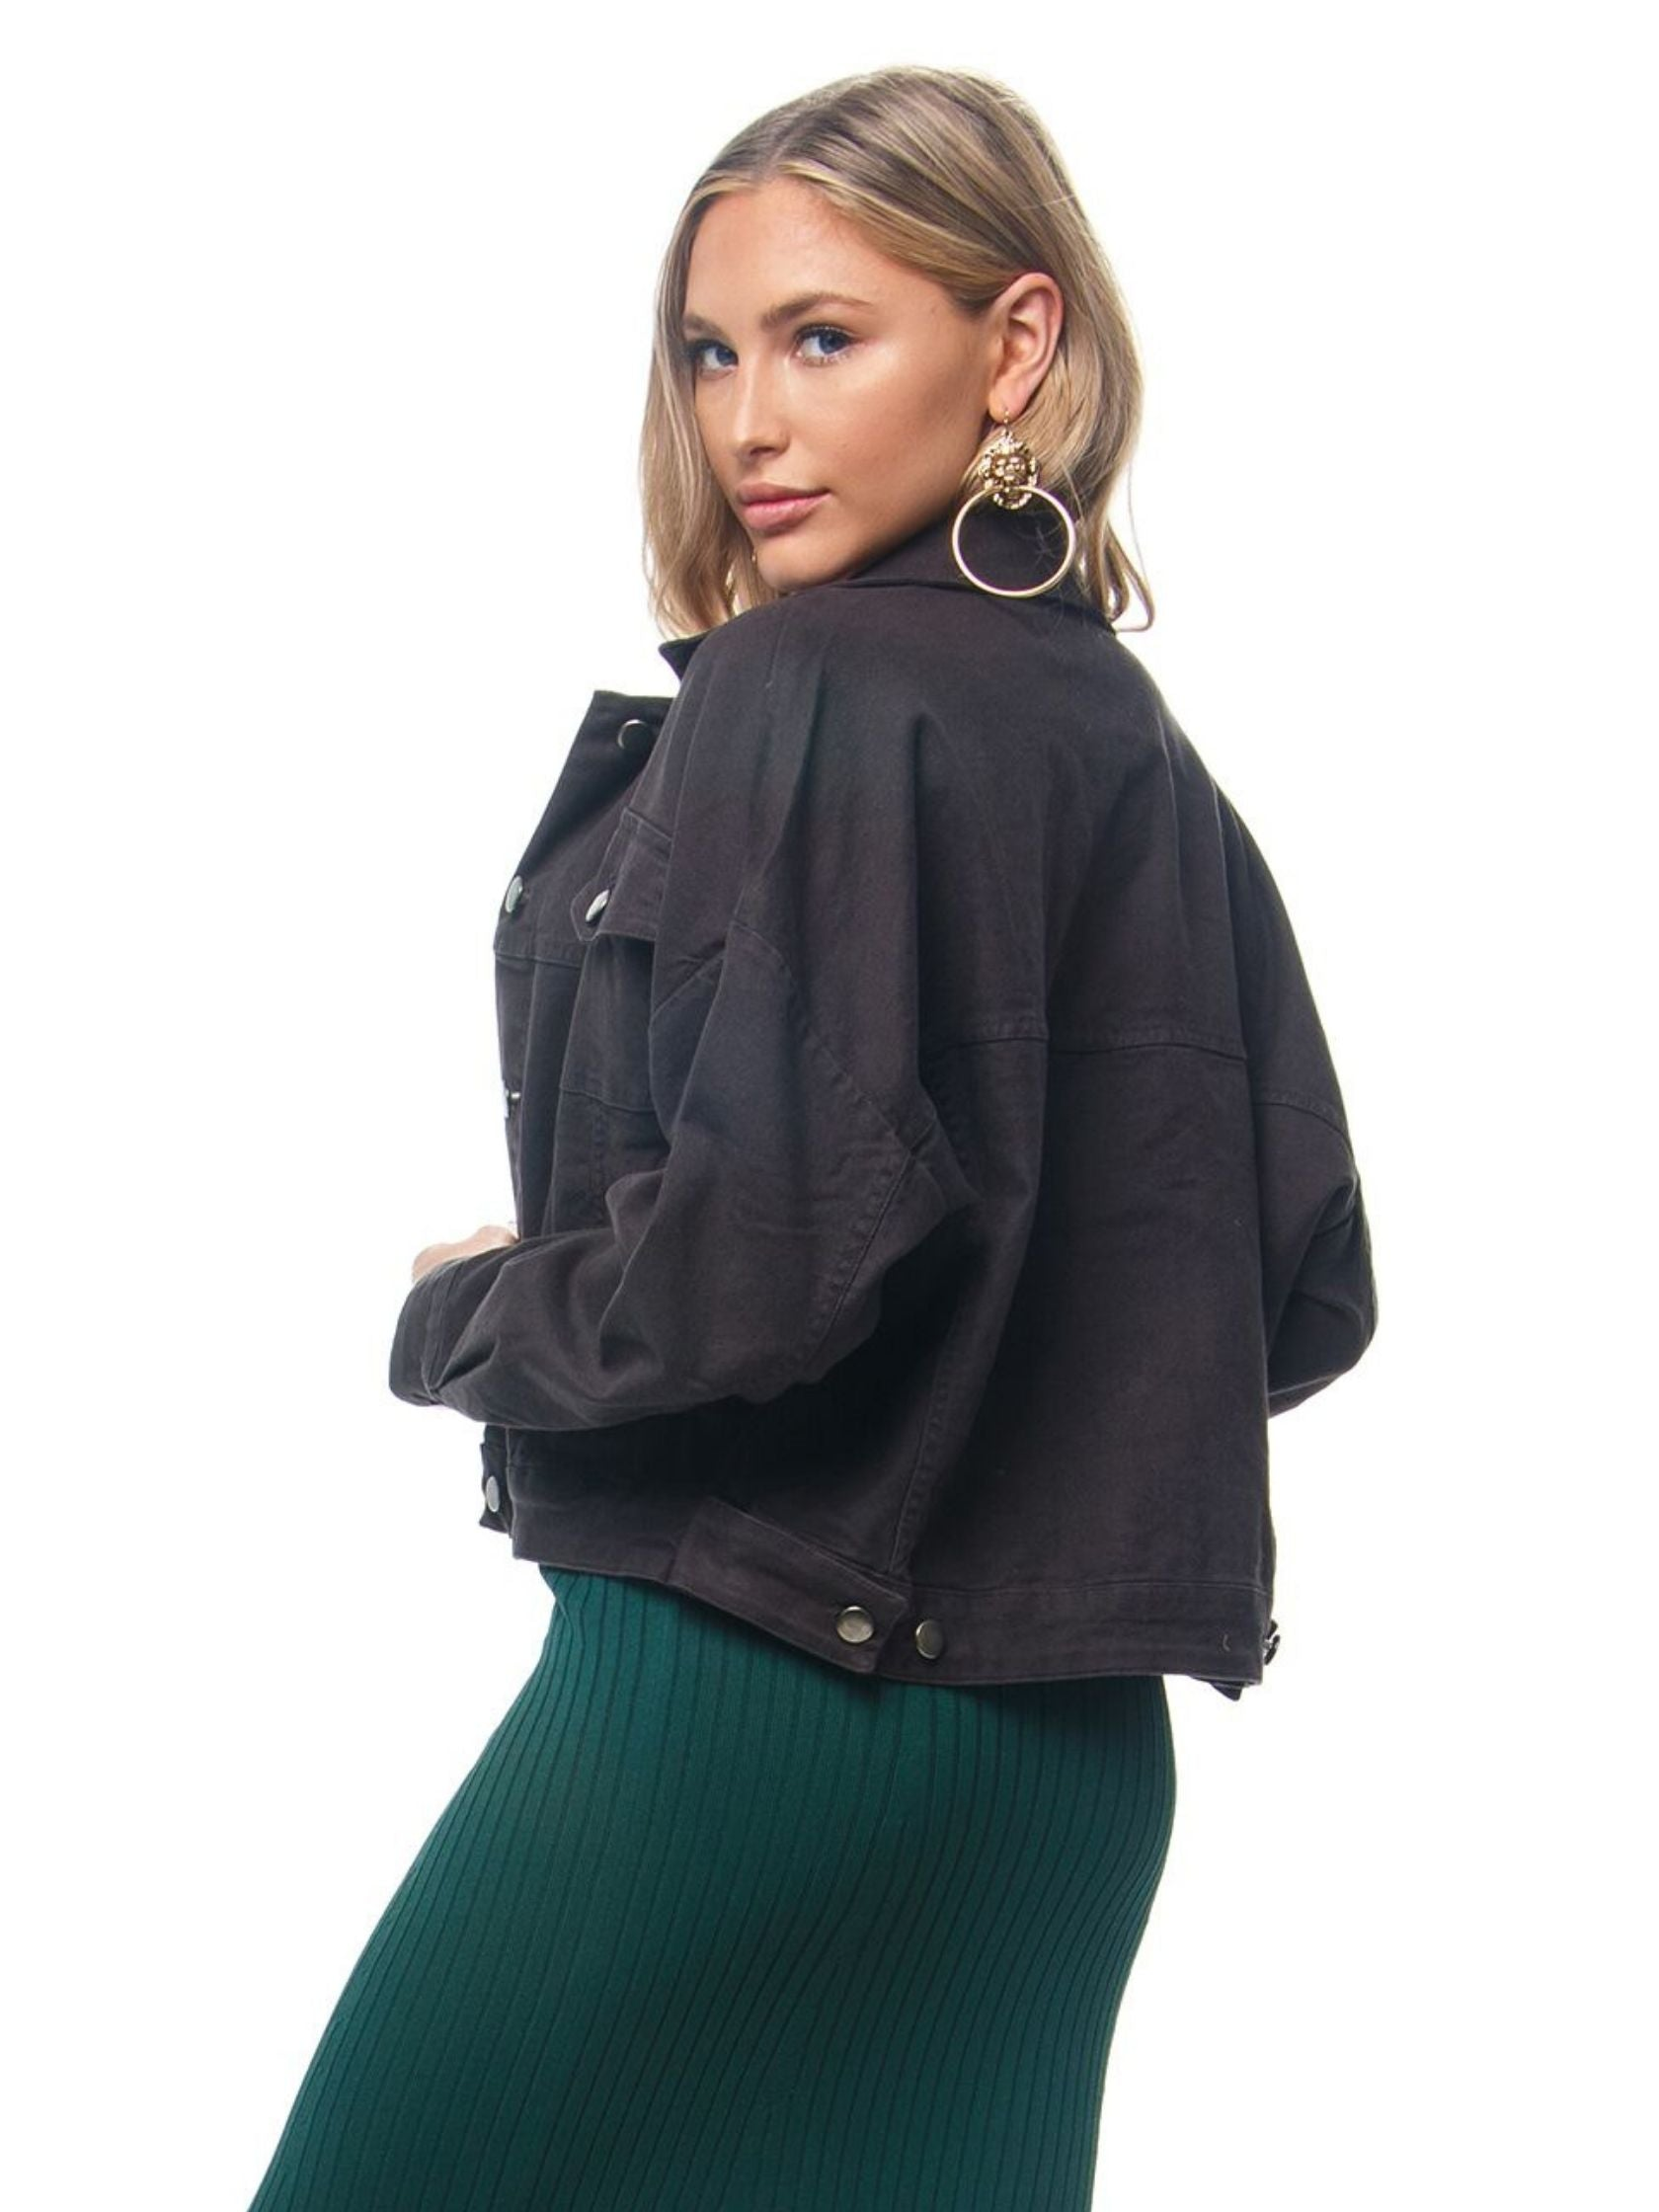 Women outfit in a jacket rental from Chaser called Vintage Canvas Drop Shoulder Trucker Jacket